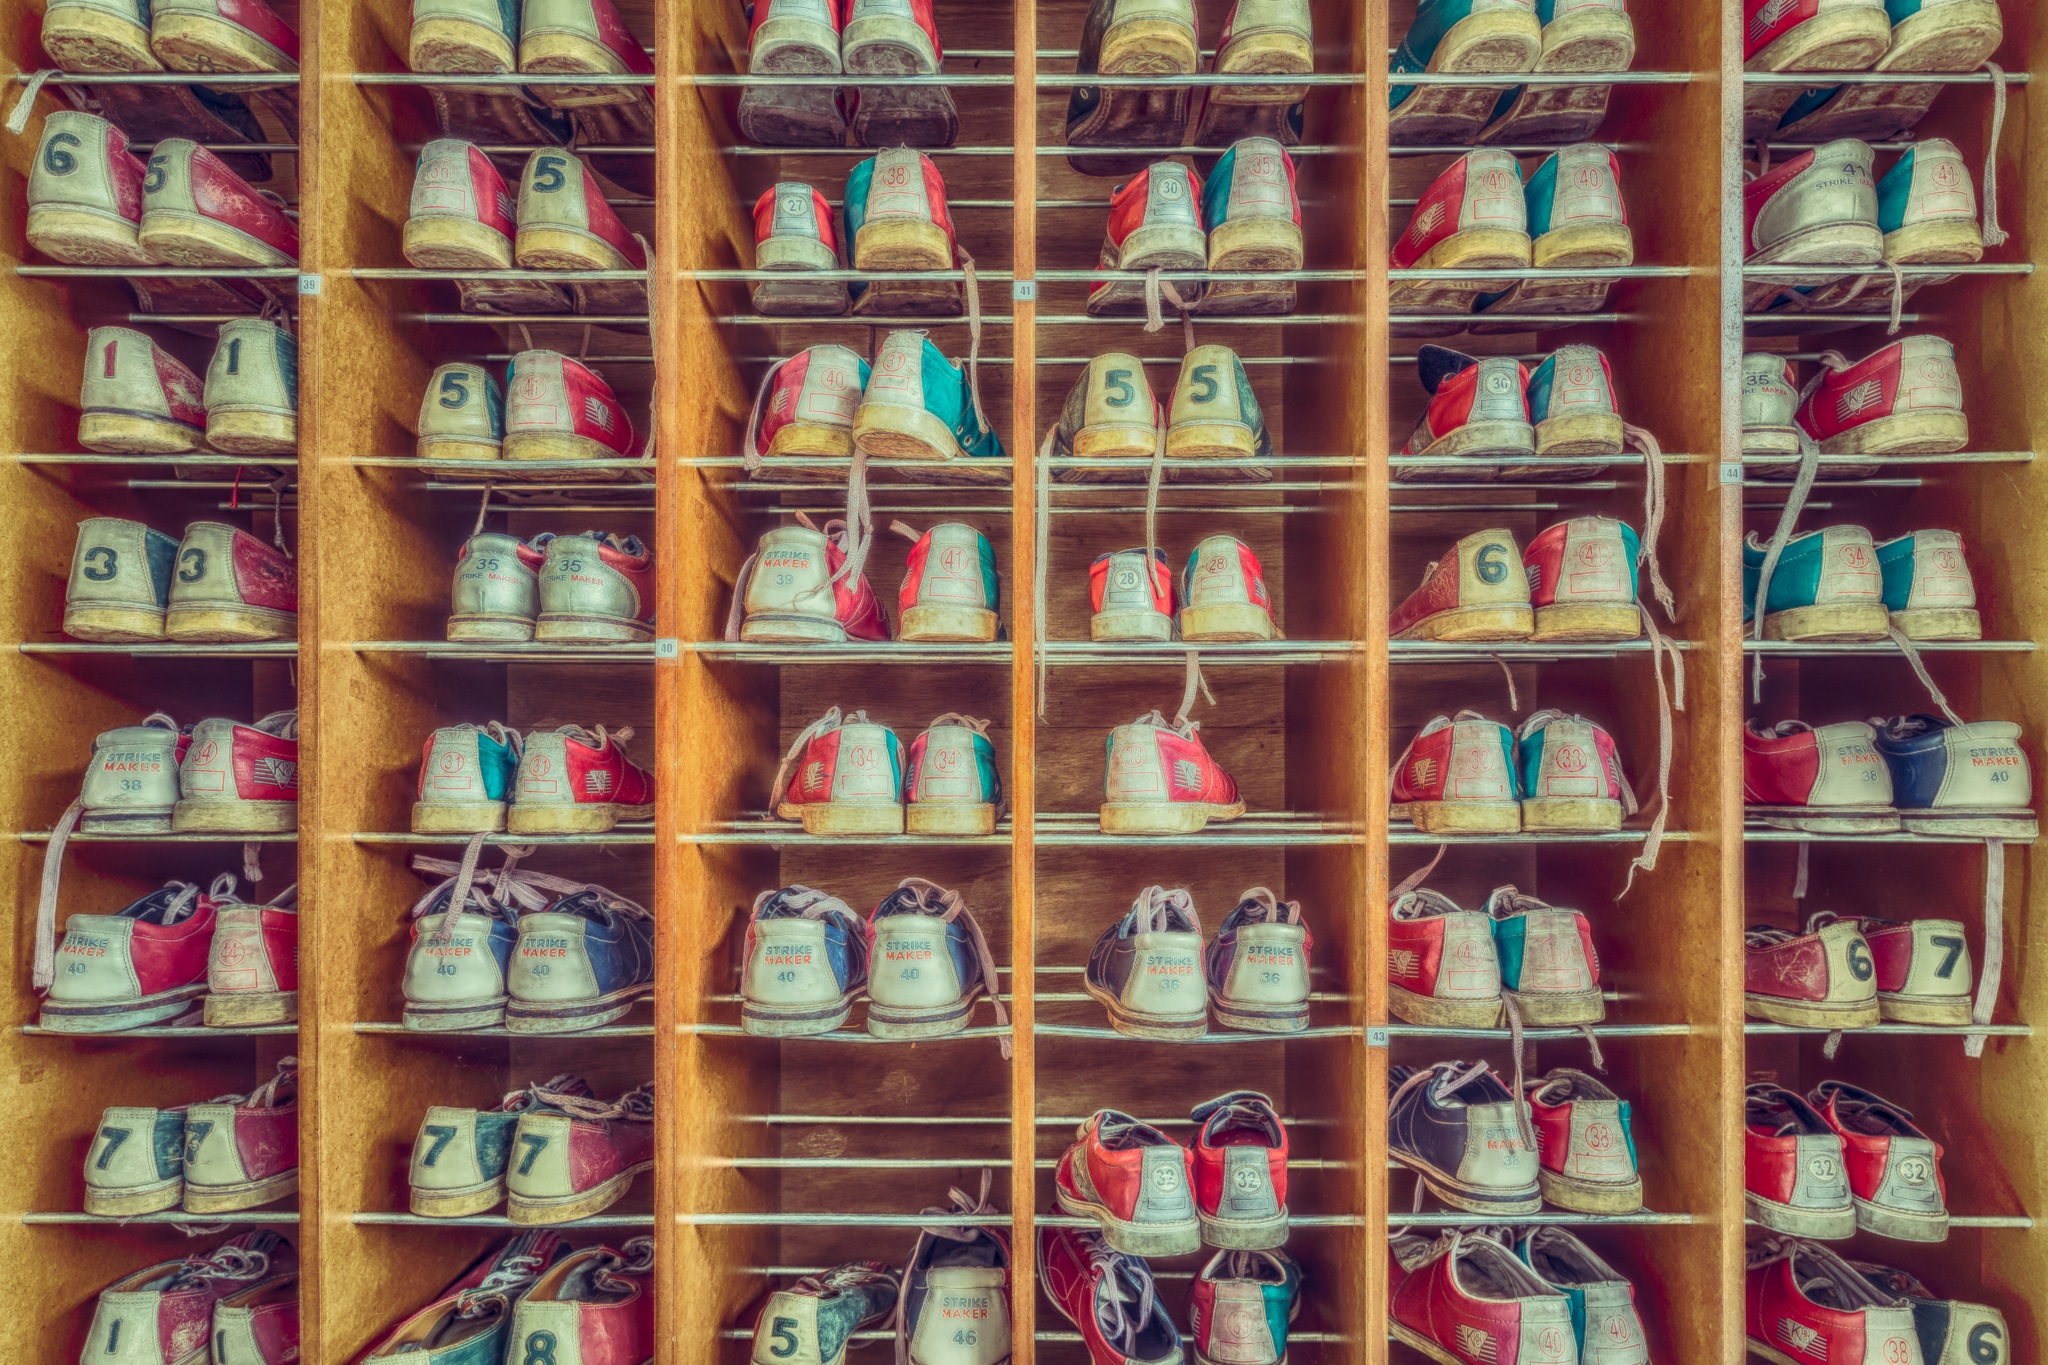 shoes, shoes, shoes by Dirk Oris